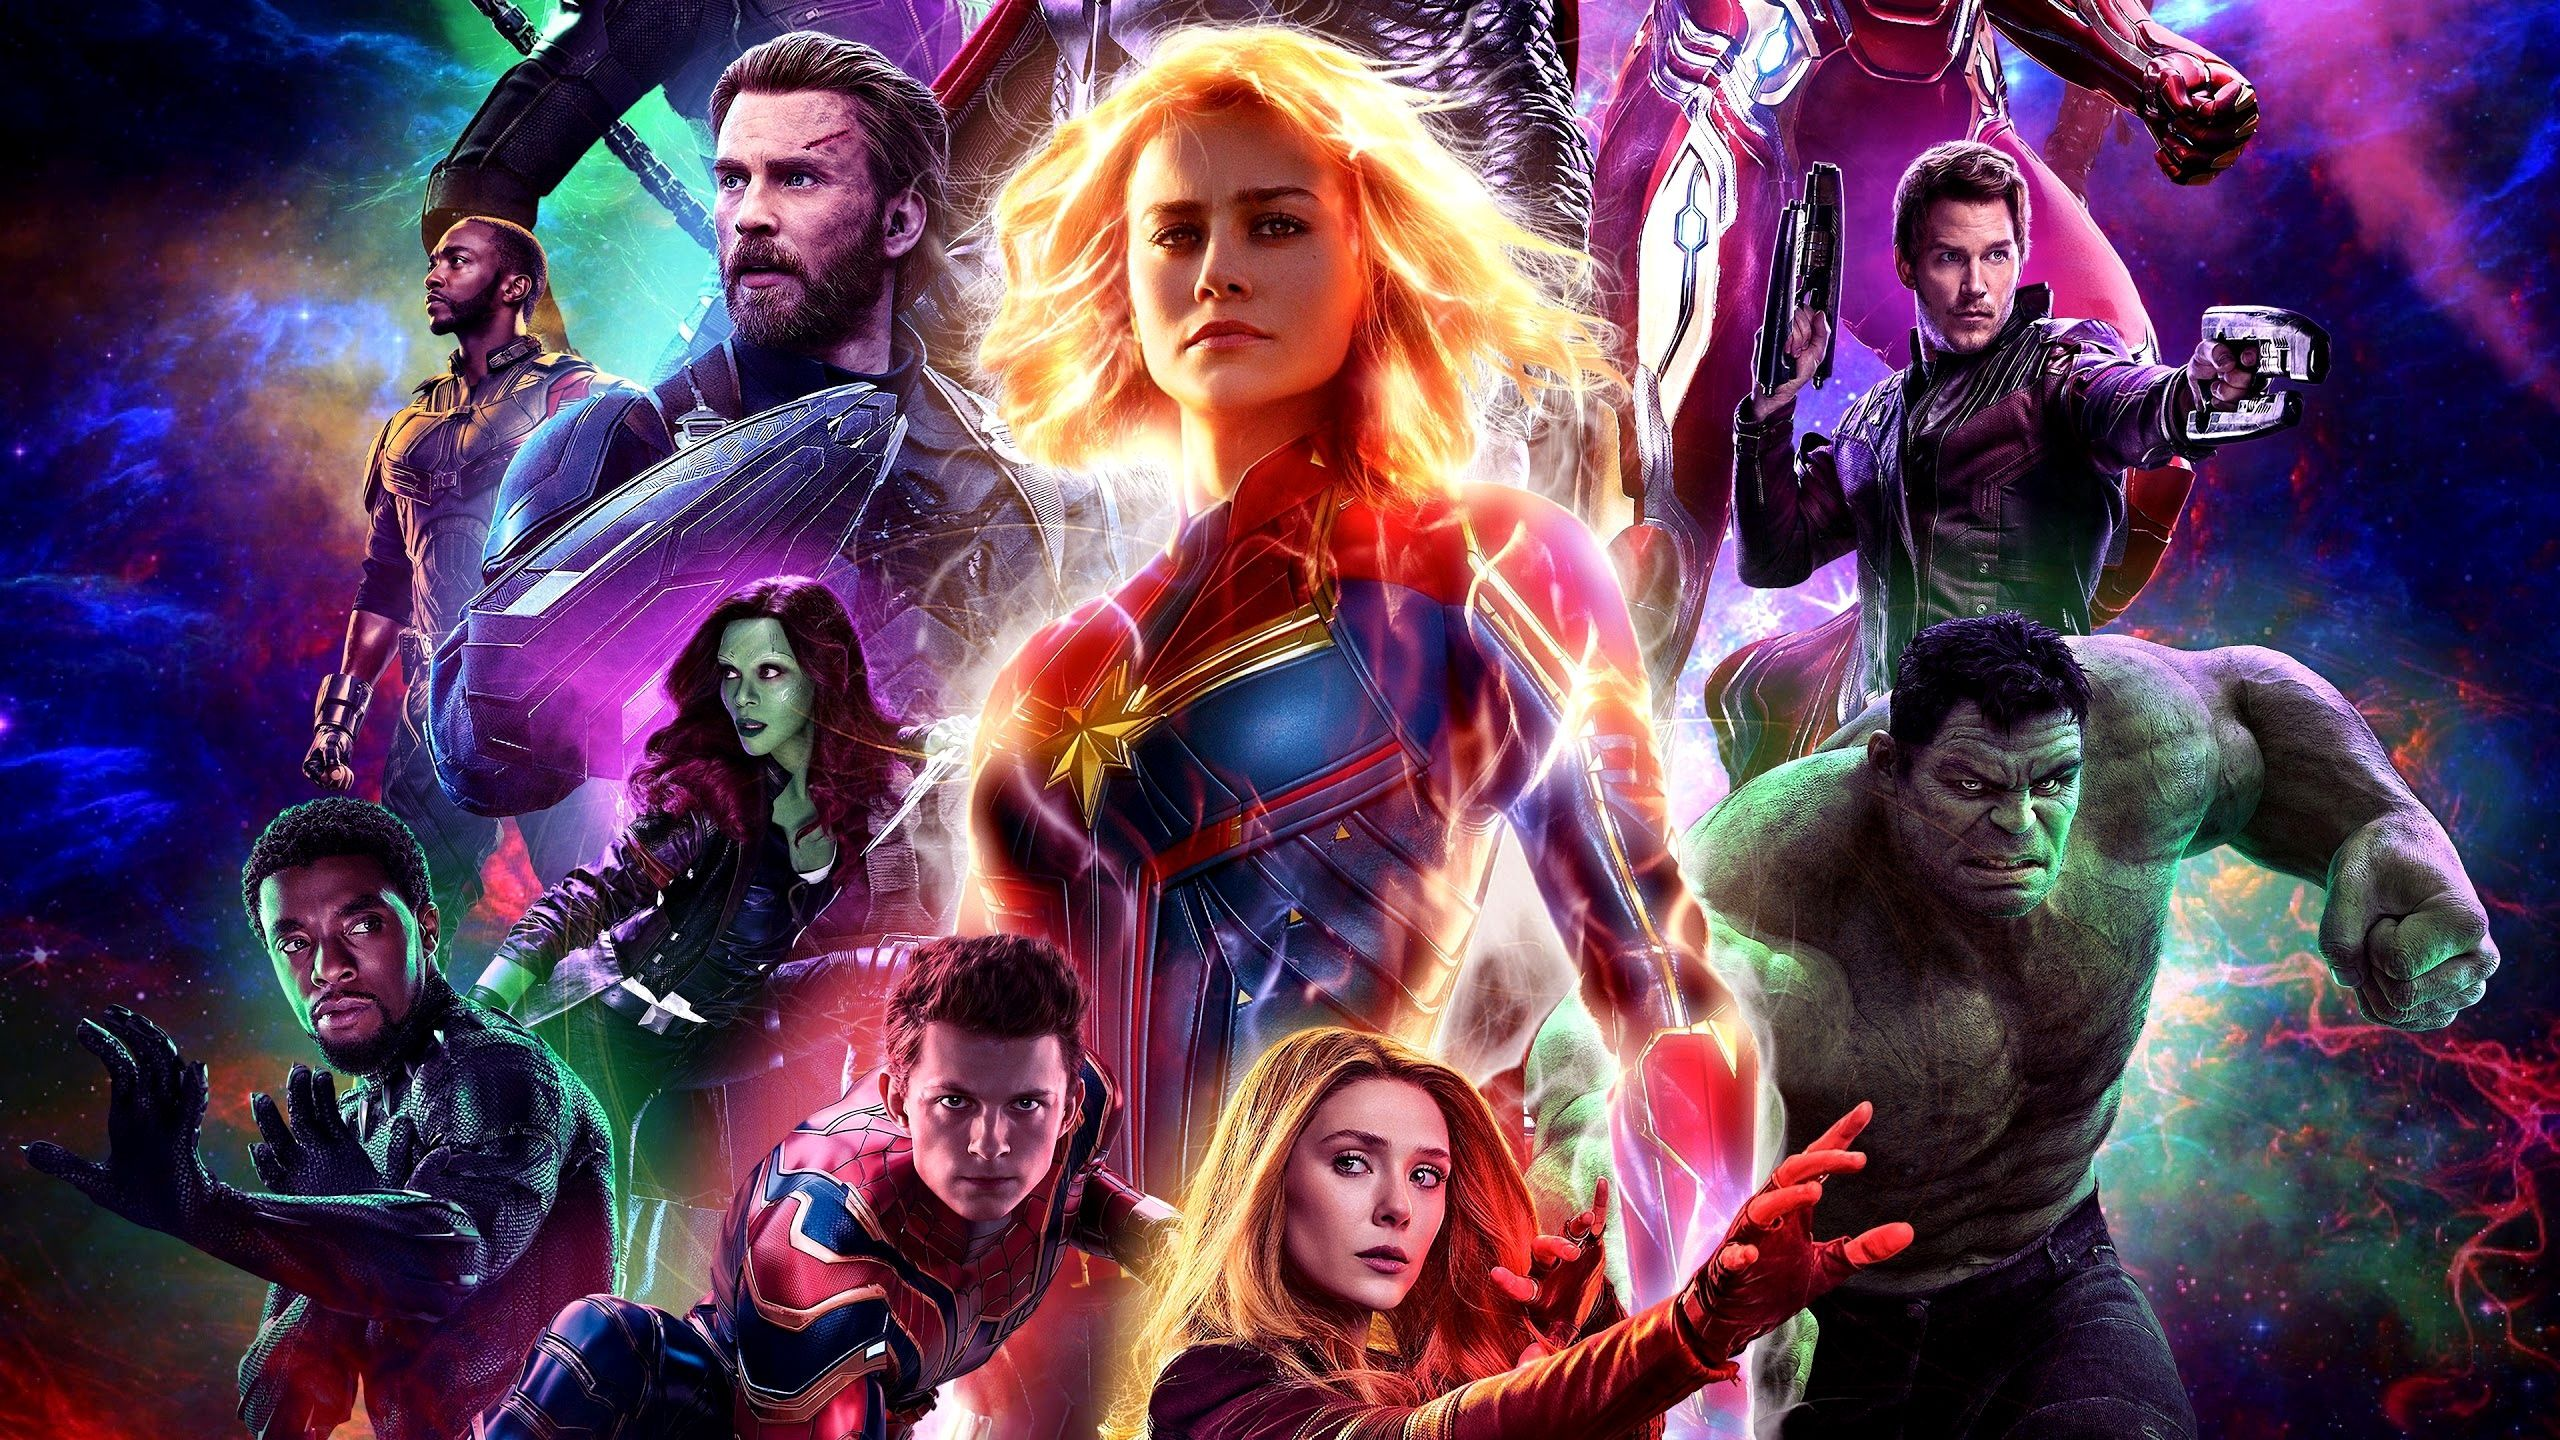 Avengers Wallpaper 4k For Pc Download Trick 4k In 2020 Avengers Cartoon Captain Marvel Avengers Characters